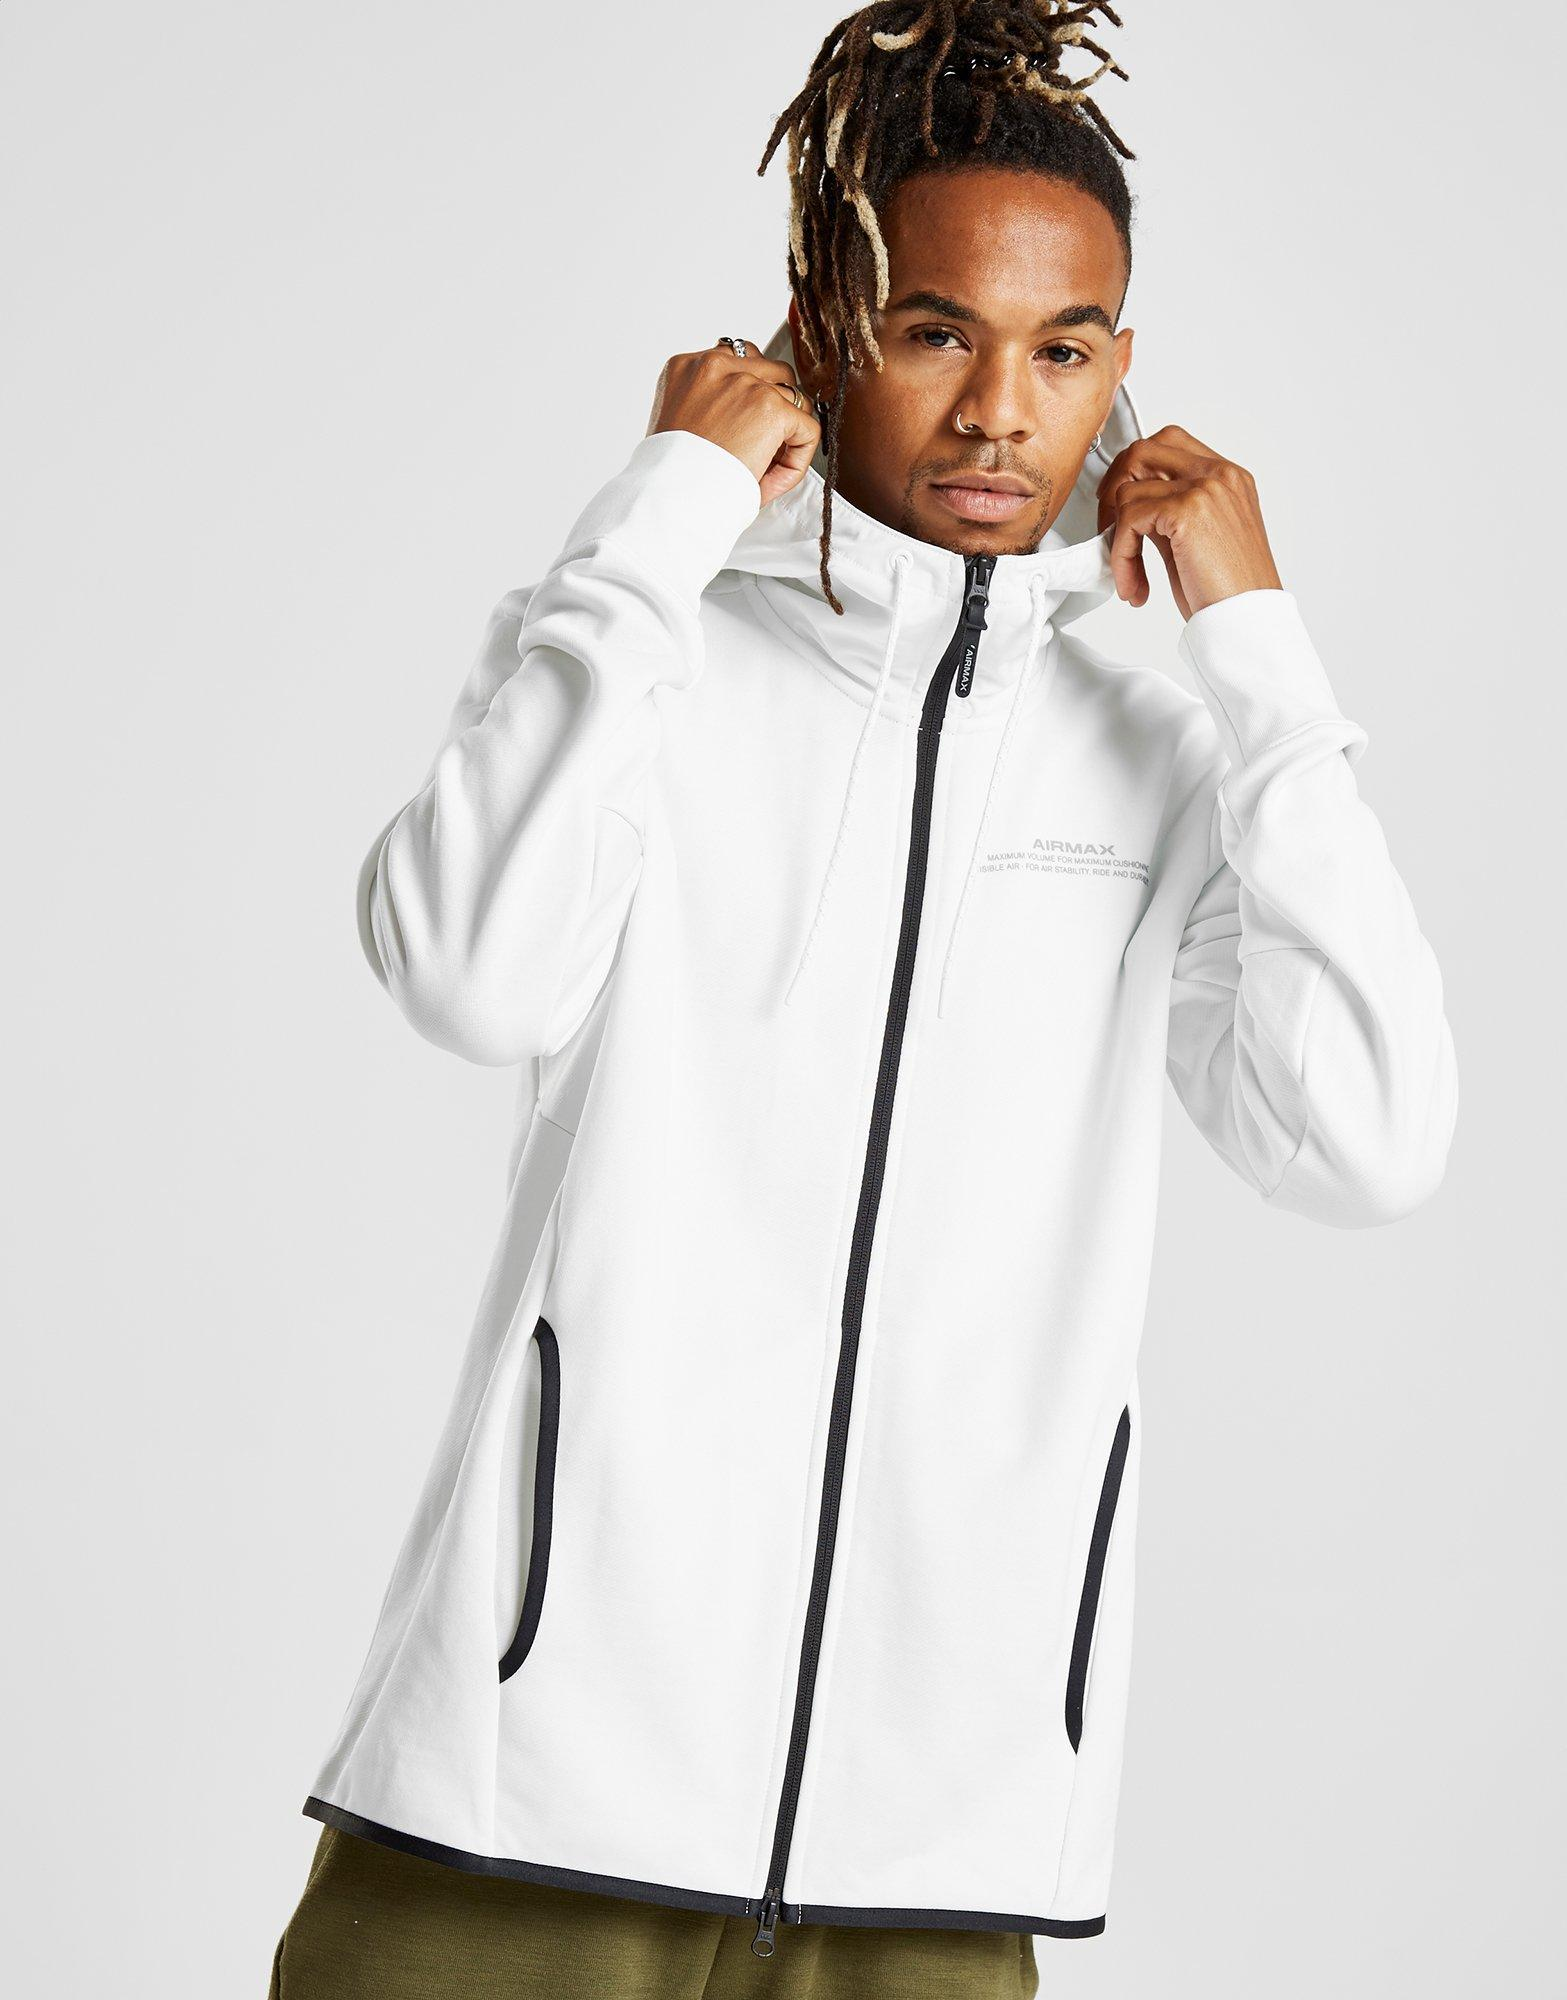 Nike Air Max French Terry Hoodie in White for Men - Lyst aa01e9f6b